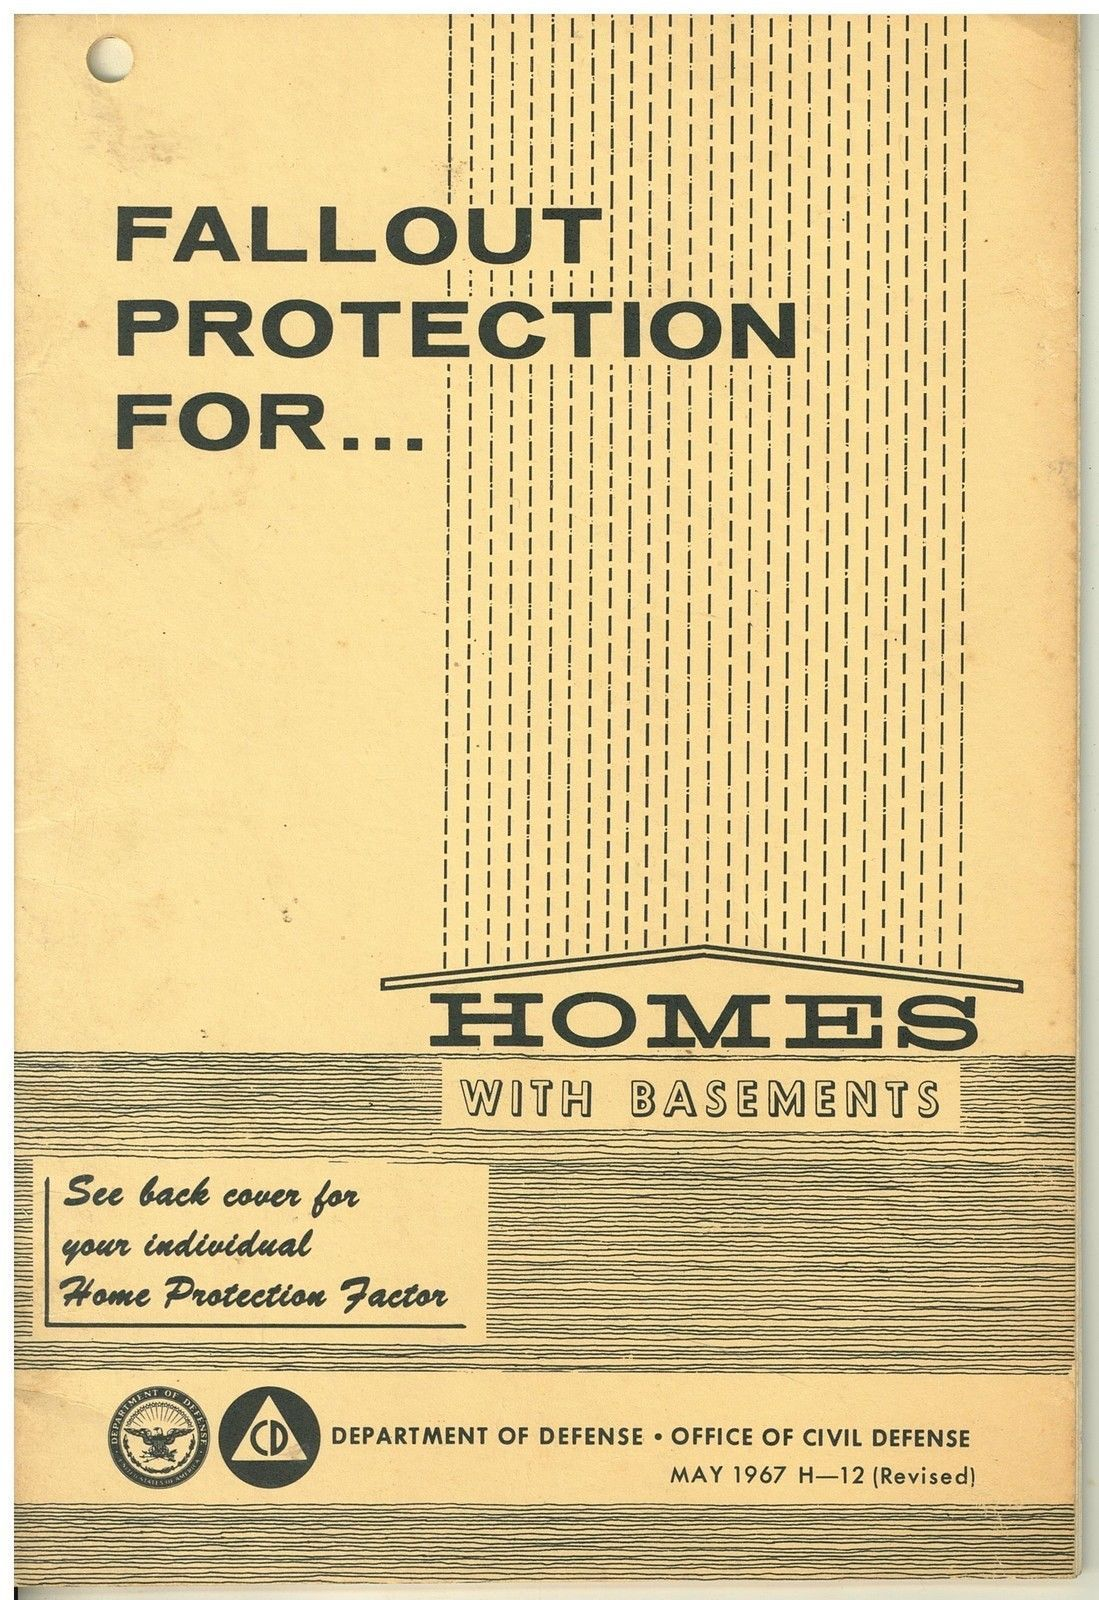 Fallout Protection for Homes with Basements - 1967